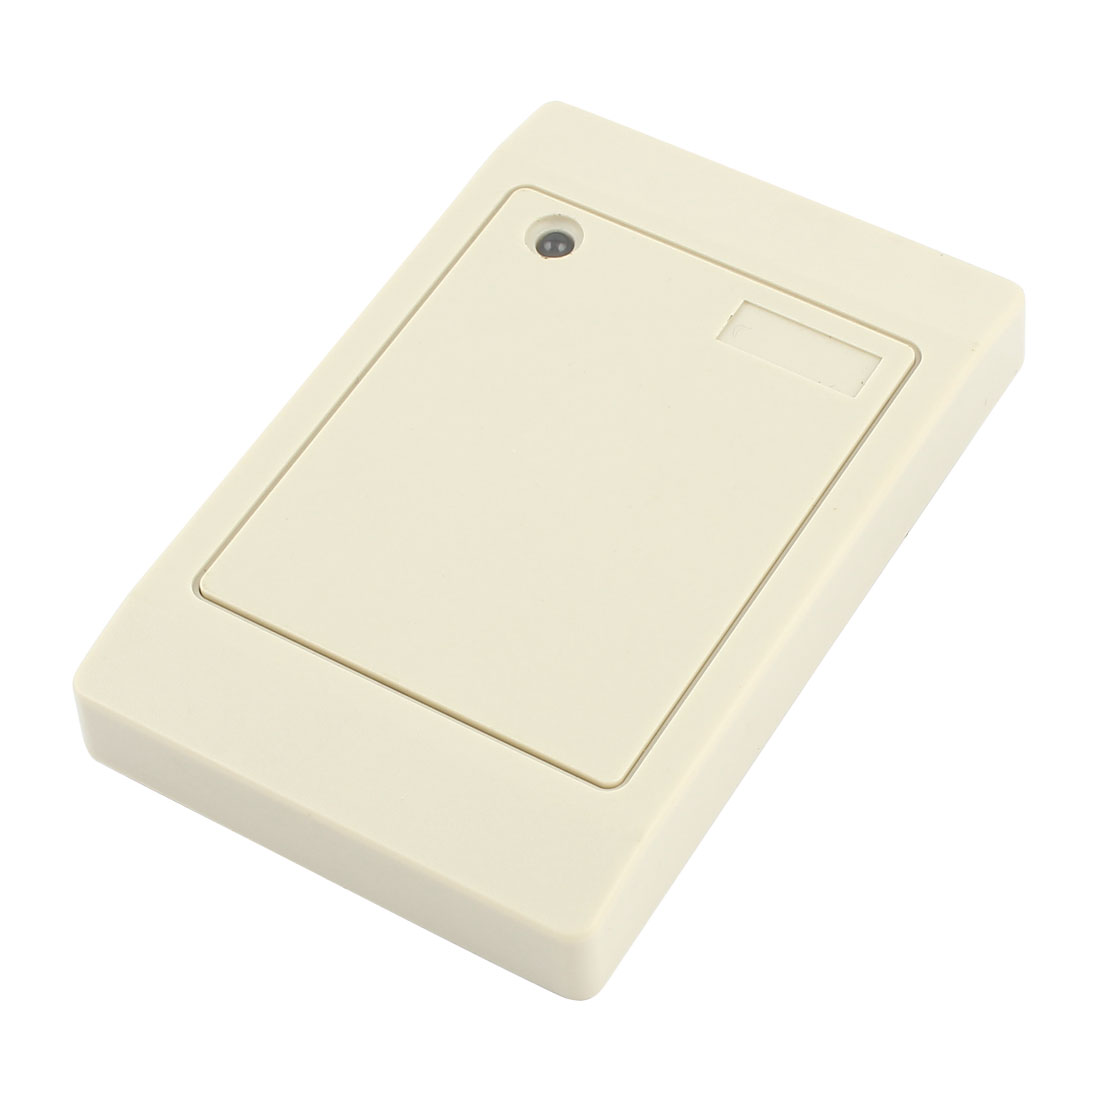 Beige Waterproof Security Door ID 26 RFID Card Reader 125KHz EM4100